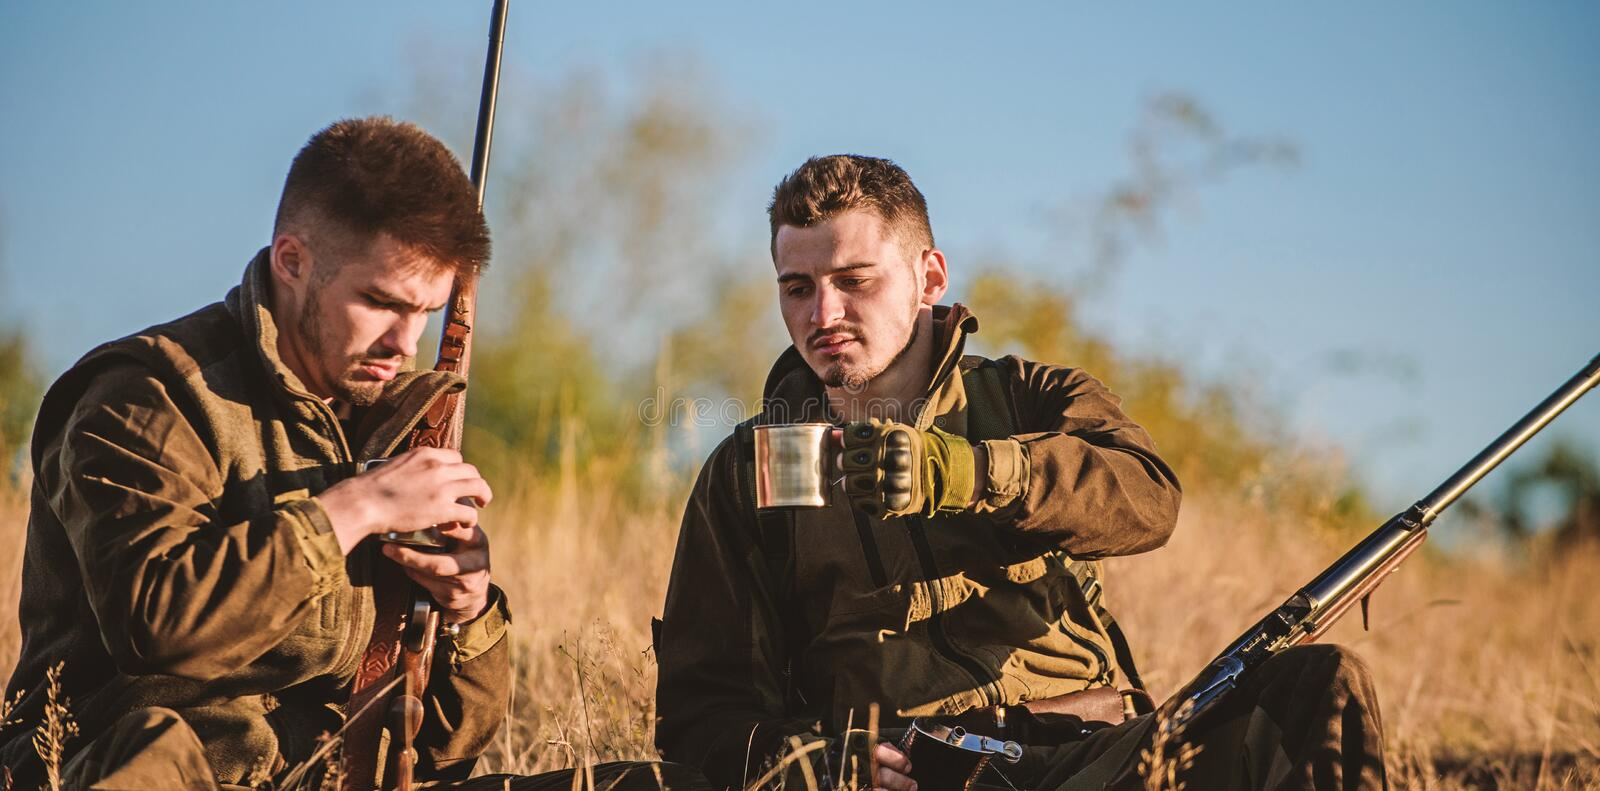 Hunters with rifles relaxing in nature environment. Hunters friends enjoy leisure. Hunting with friends hobby leisure stock photography